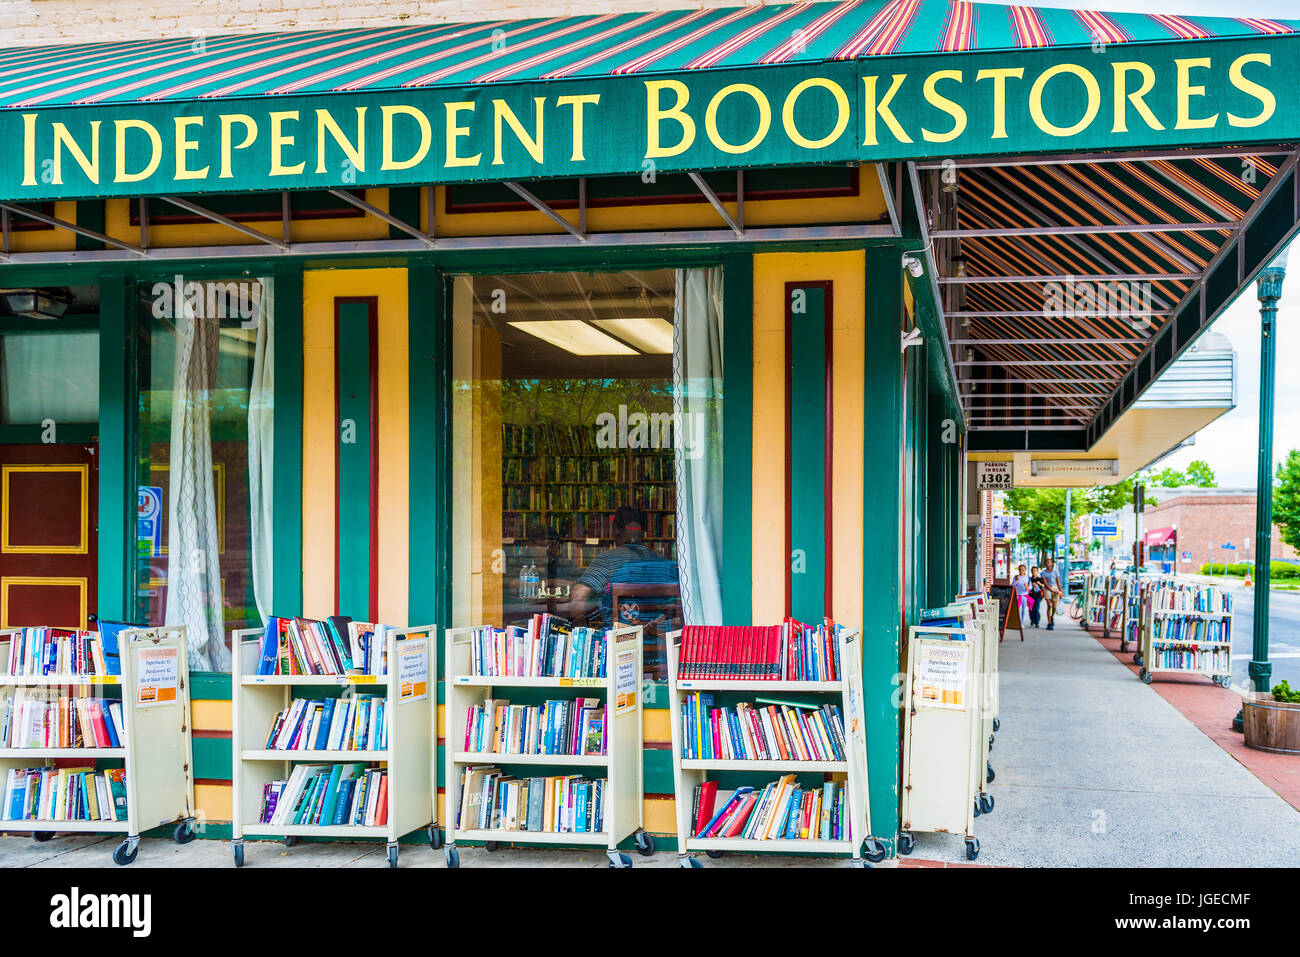 Harrisburg, USA - May 24, 2017: Independent bookstores sign and building with books in Pennsylvania capital city - Stock Image